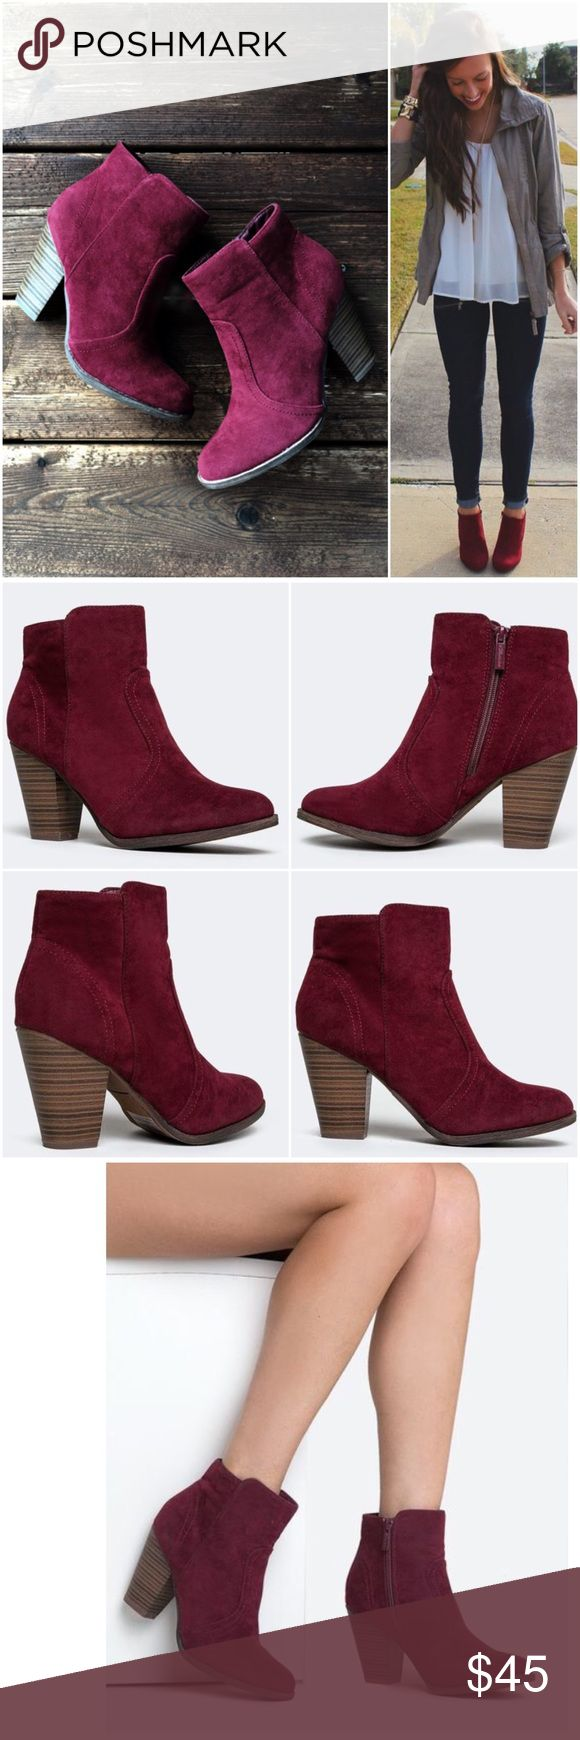 "⭐️LAST SIZES!⭐️NIB Wine/Burgundy Ankle Booties NIB Wine/Burgundy Ankle Booties. Pair these beautiful booties with skinnies or a dress -- such a beautiful color for fall and winter! Features a wooden heel, decorative stitching, and inner ankle zipper closure. Non-skid sole, cushioned footbed. Heel is approx 3.5"", shaft is 7.5"" height, opening circumference approx 10.5"". Fits true to size, vegan suede. No Trades and No Paypal Price is firm, but can discount in a bundle. WILL NOT BE RESTOCKED…"